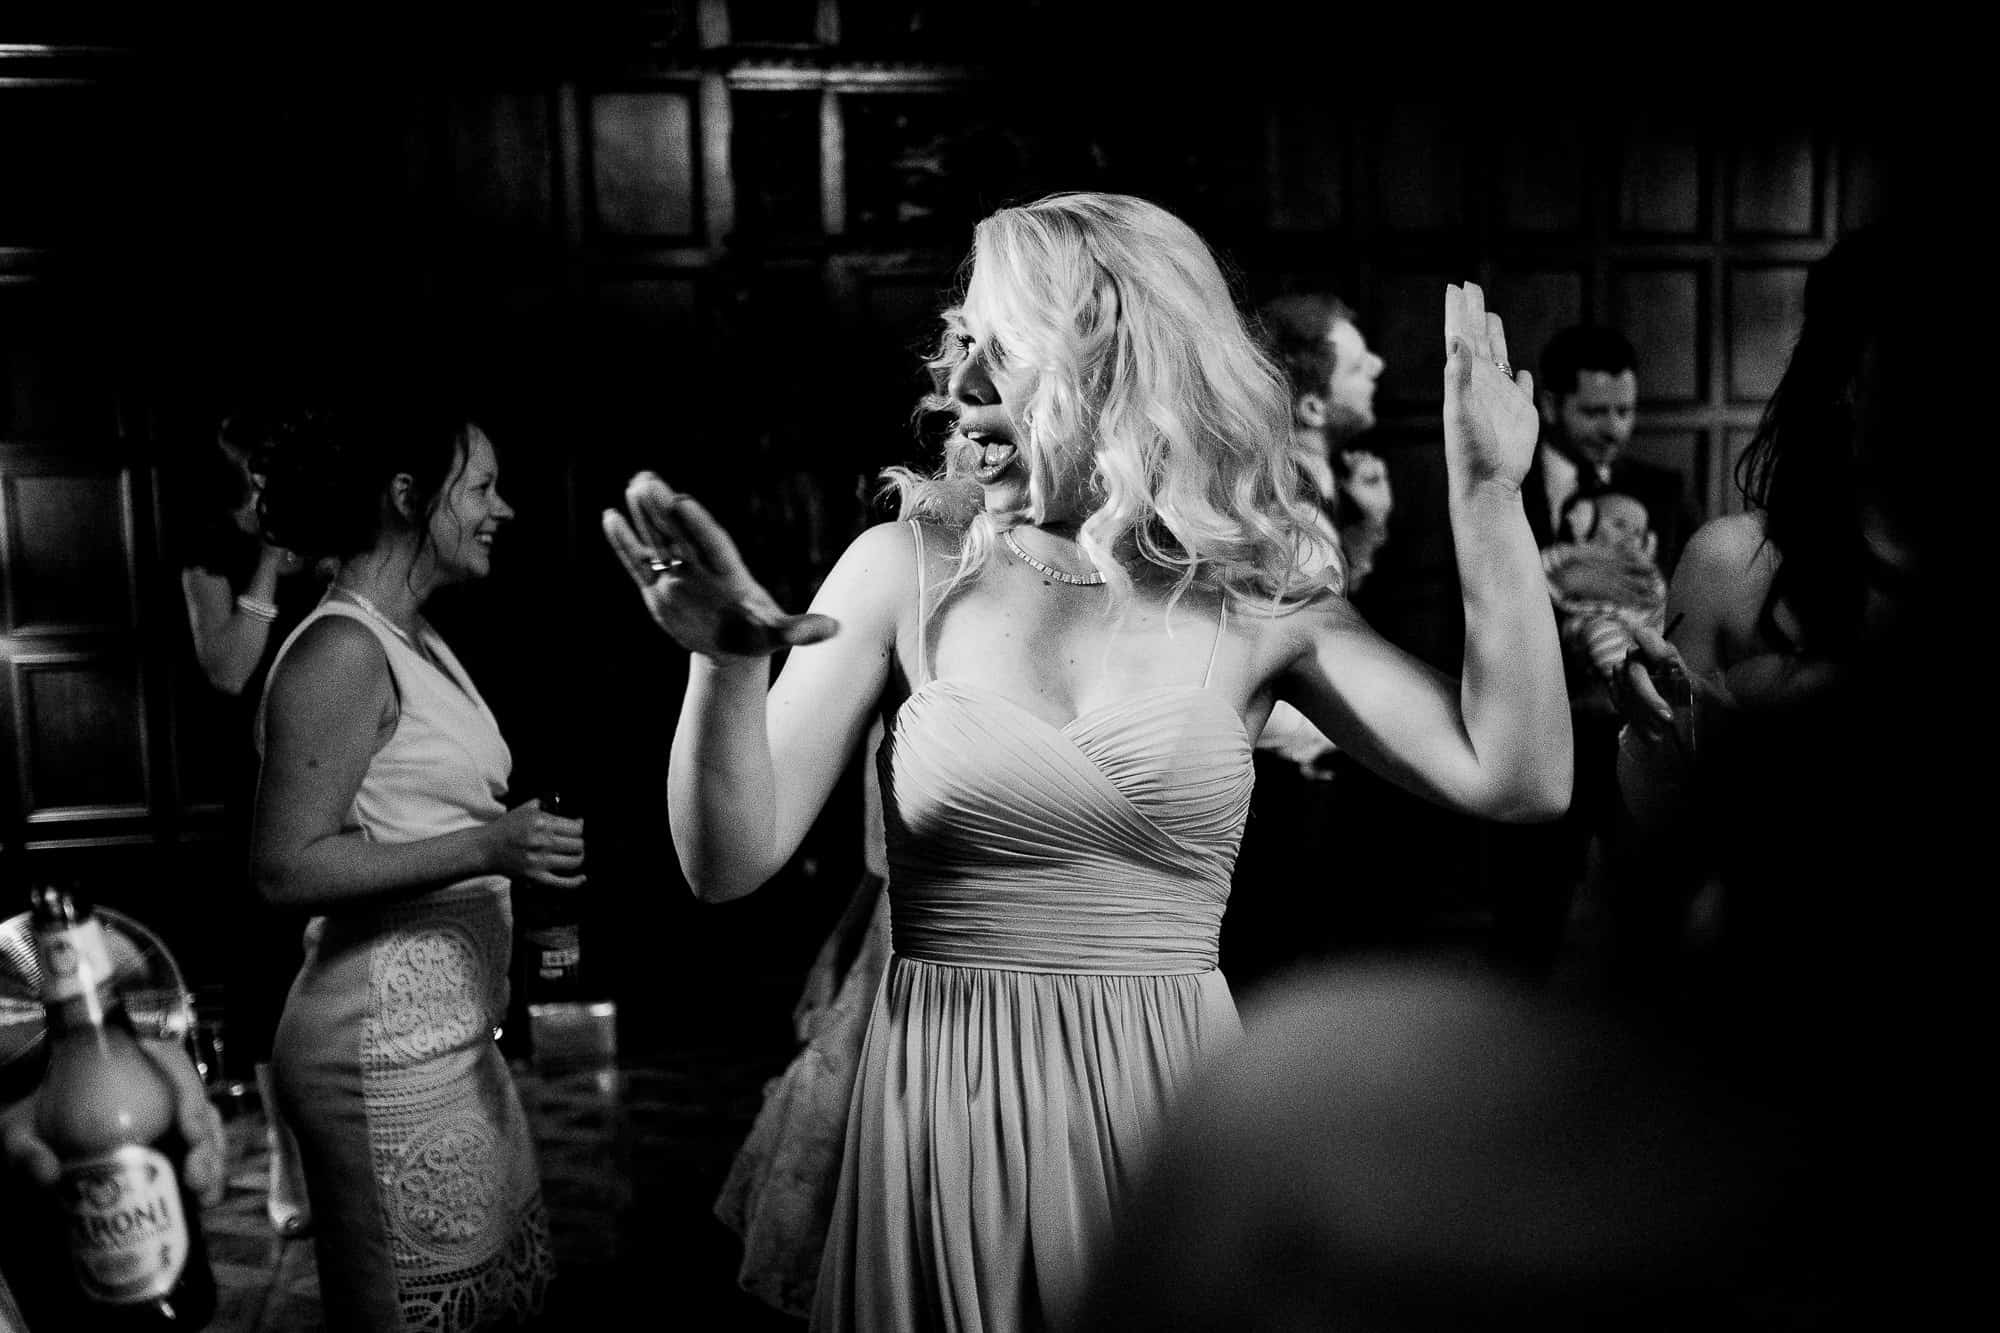 huntsham-court-wedding-photography-matt-tyler-0067